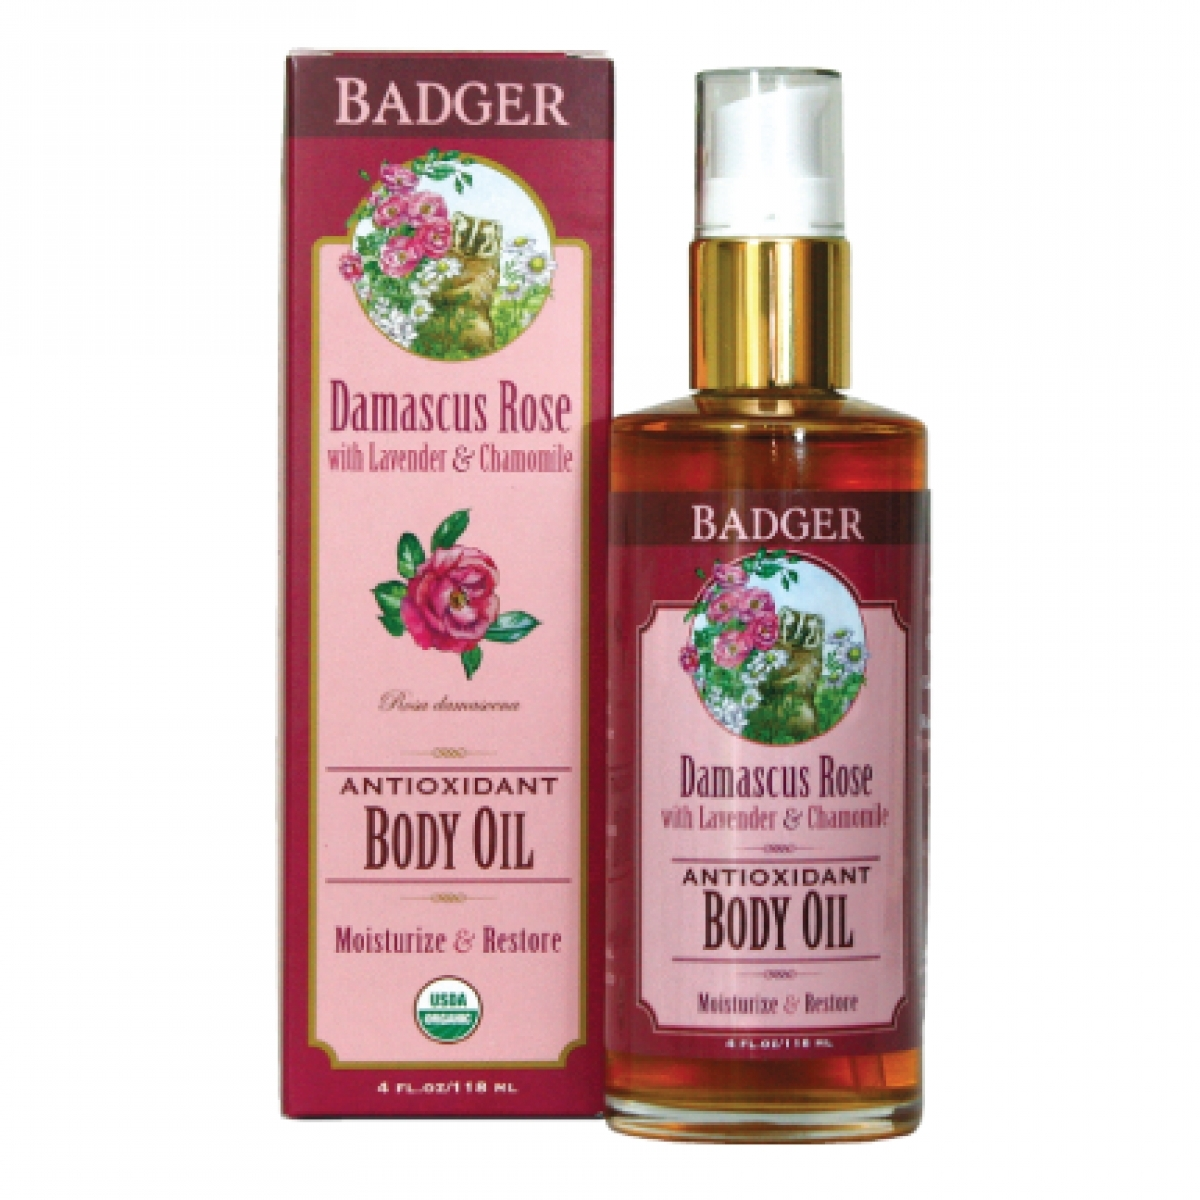 Badger Damascus Rose Antioxidant Body Oil (4oz)